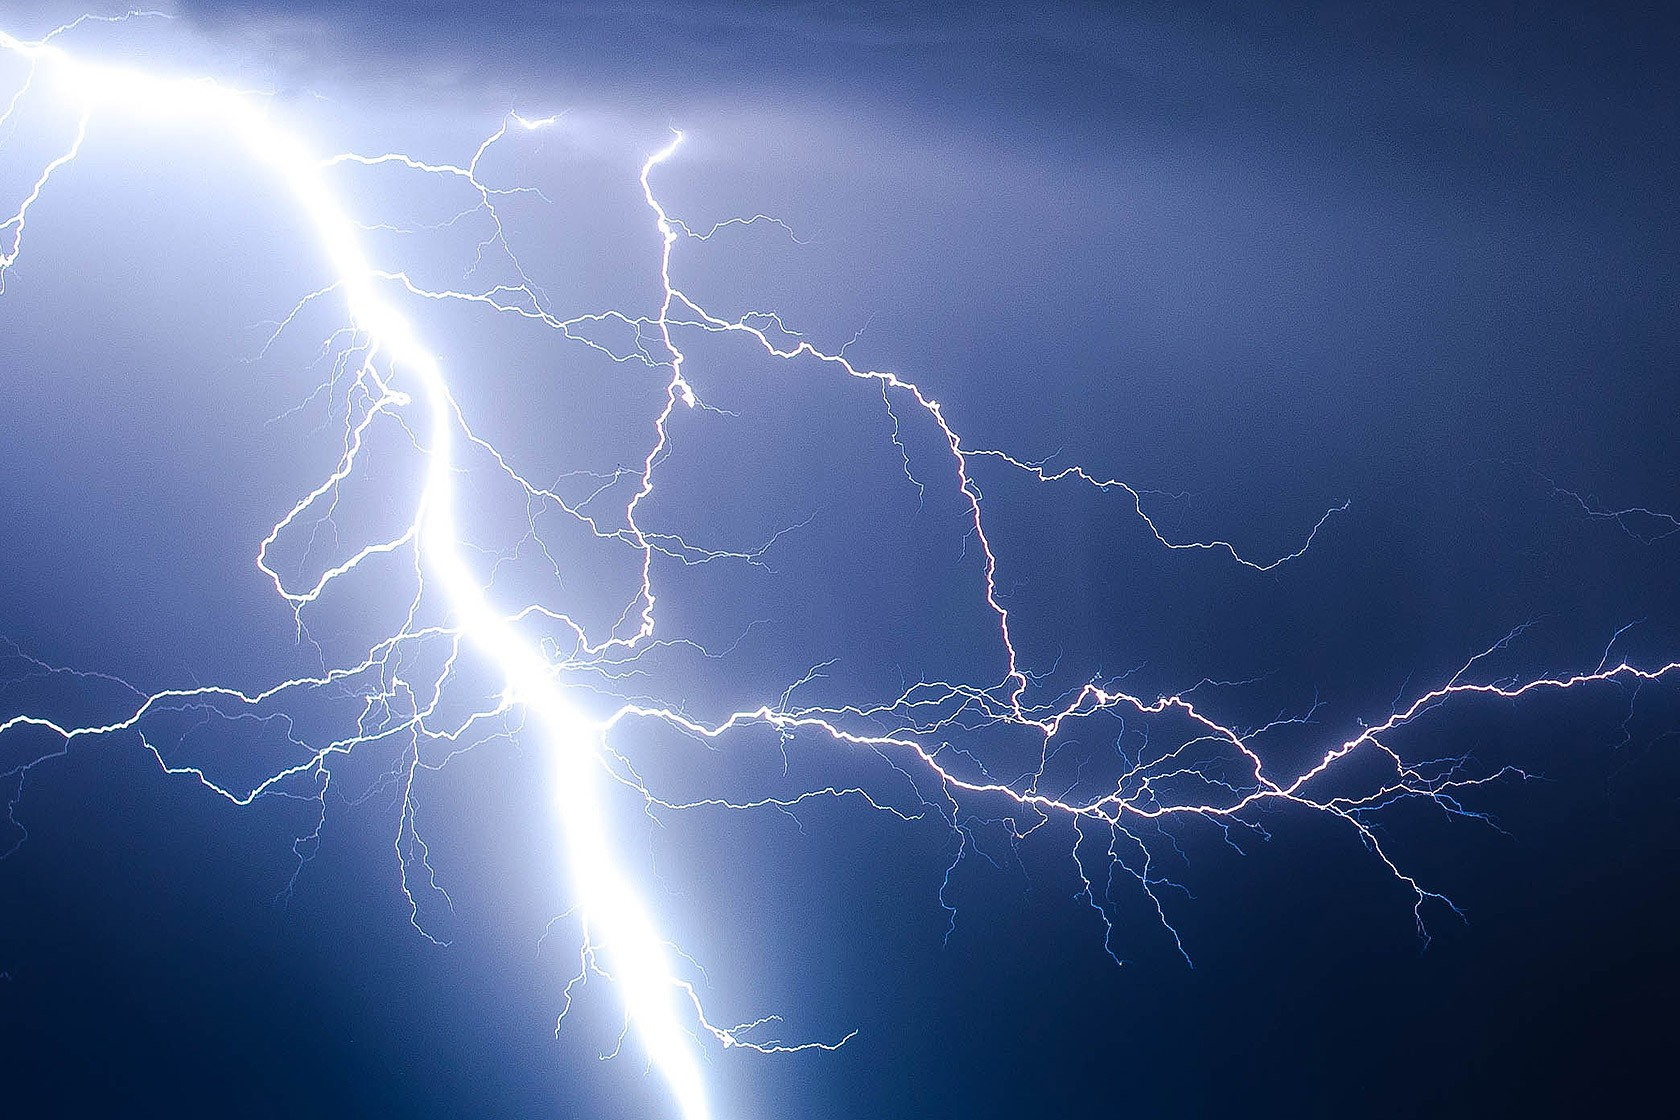 lightning_01 © Photo by Brandon Morgan on Unsplash